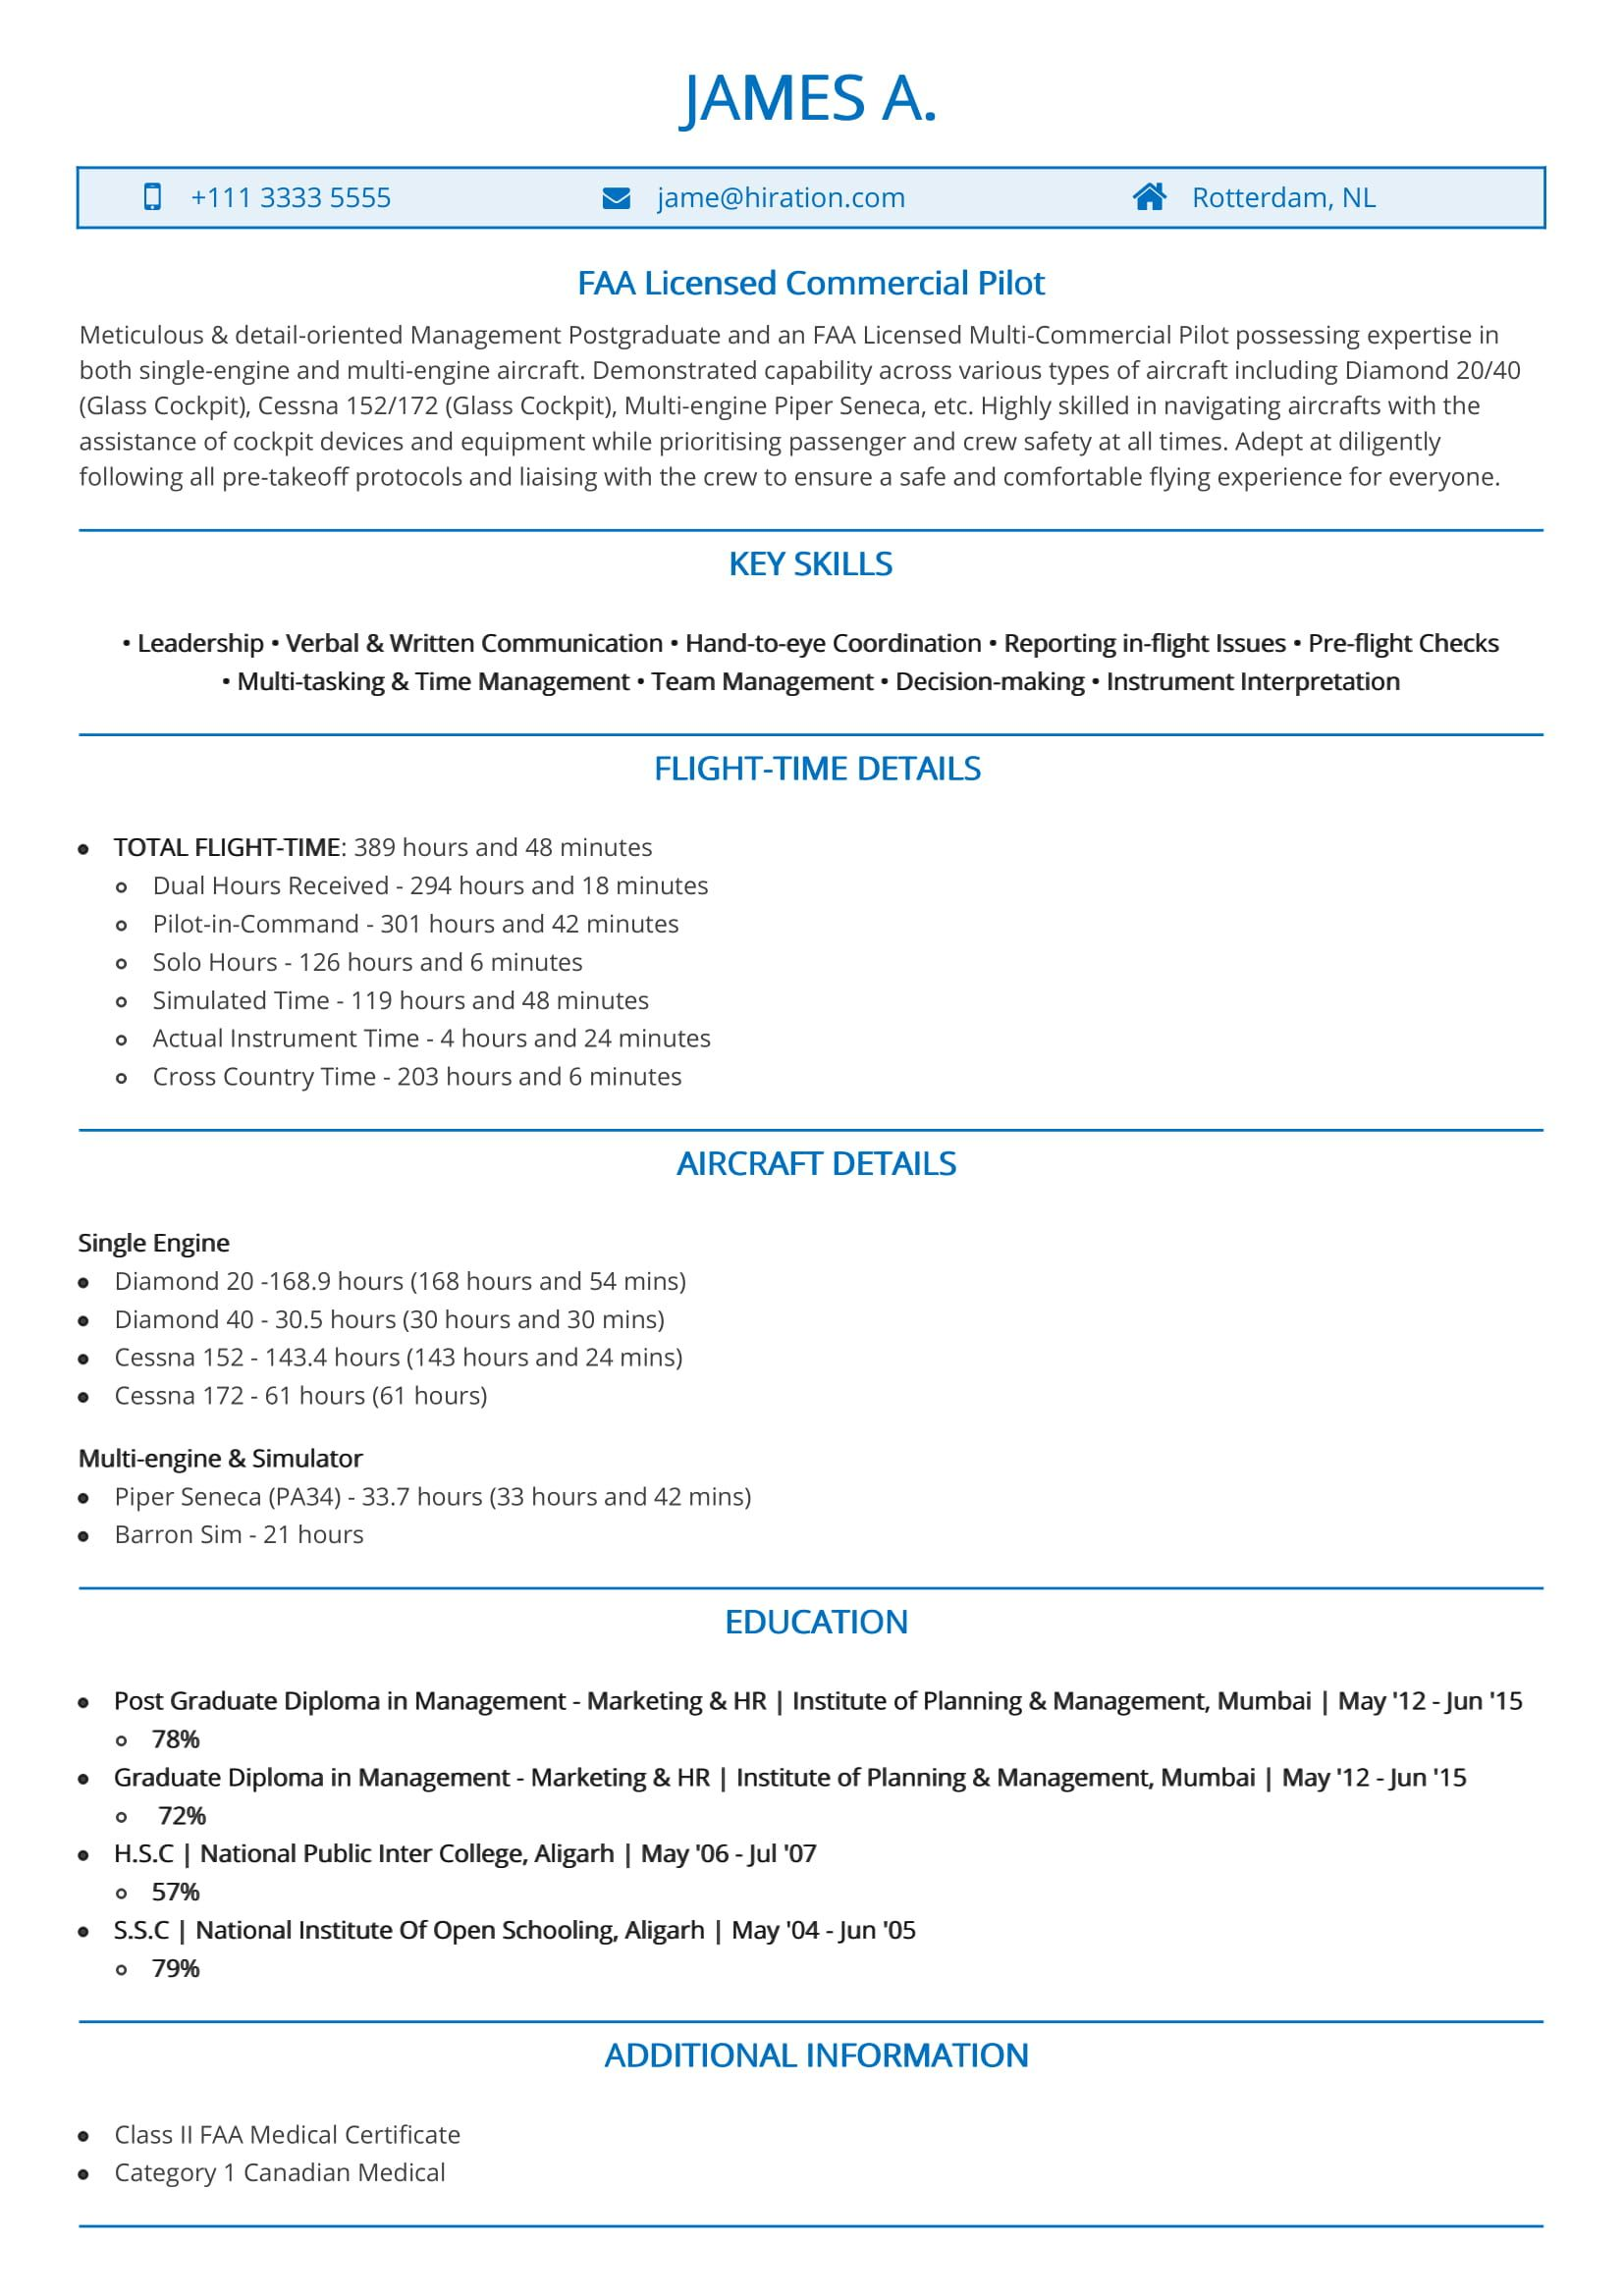 Career Change Resume 2020 Guide To Resume For Career Change